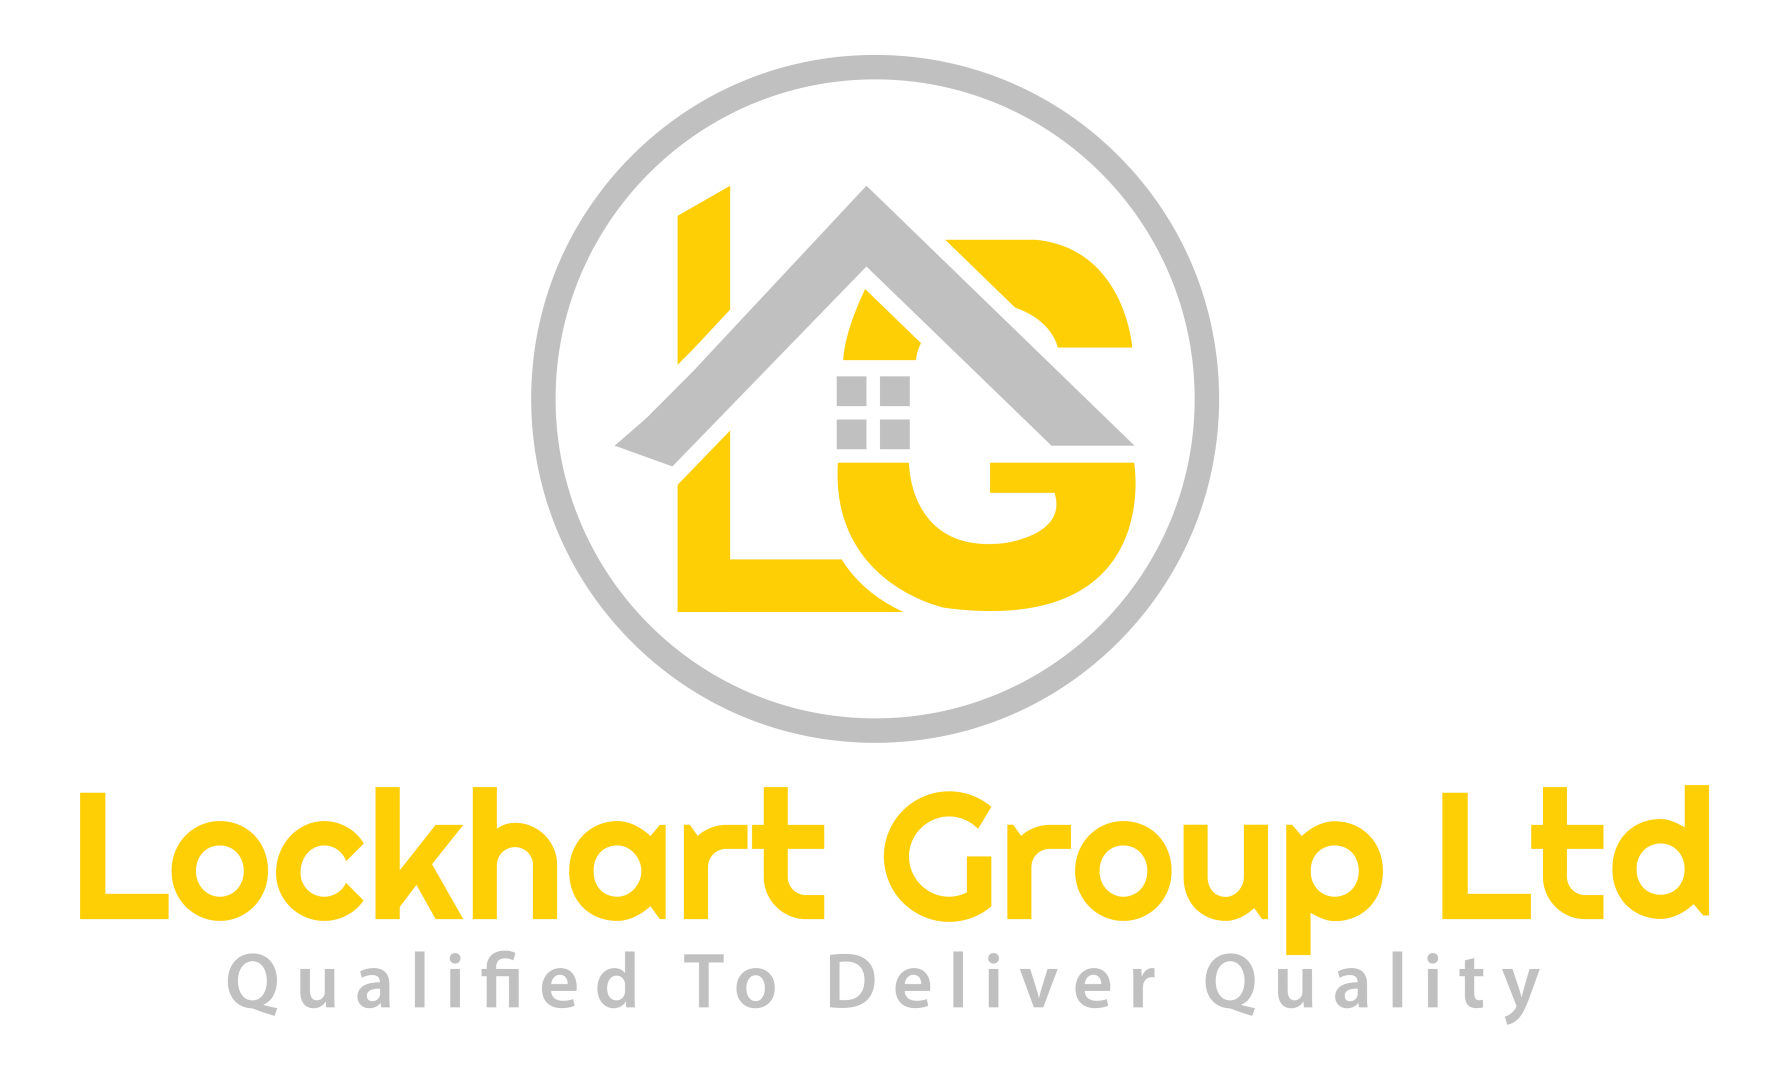 Lockhart Group